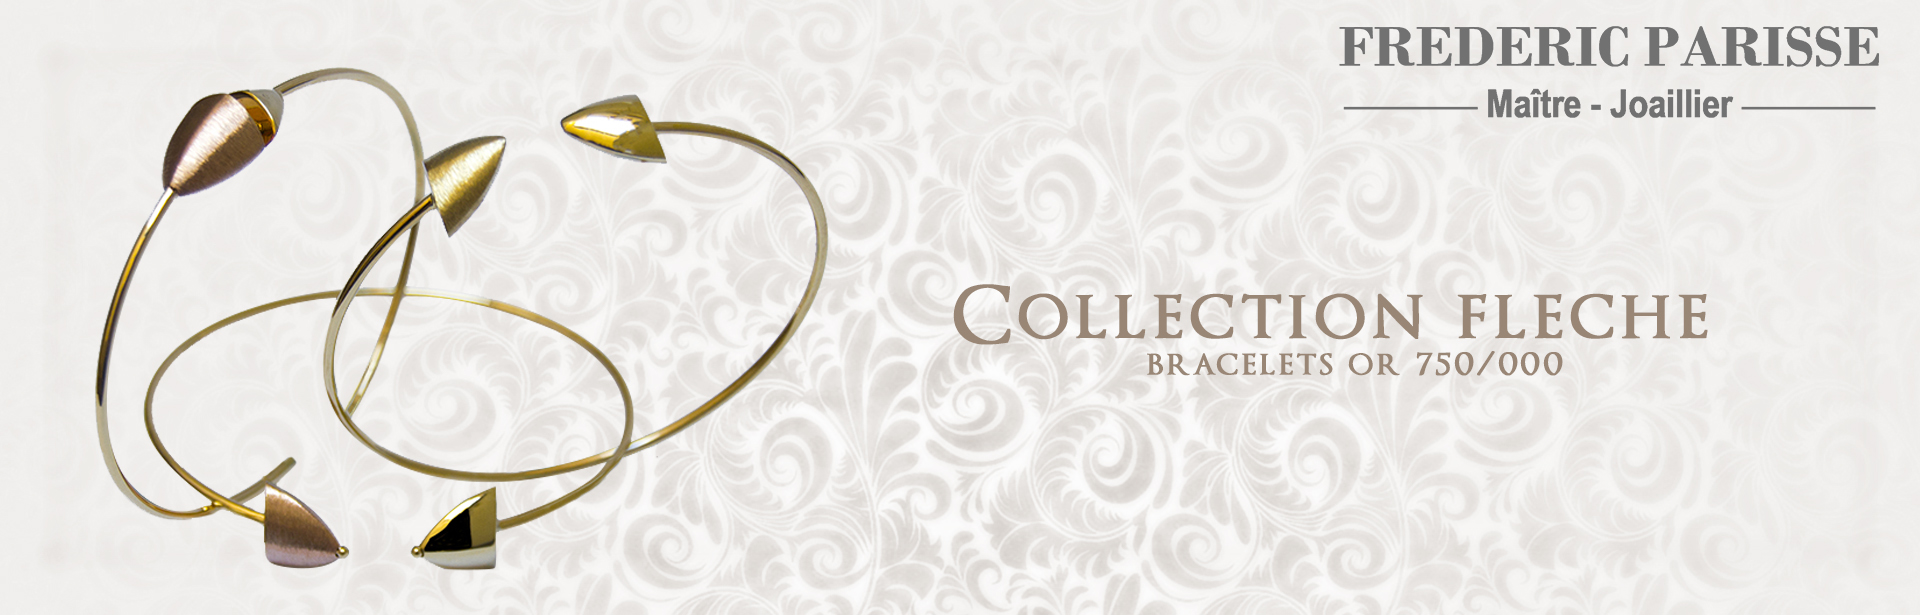 banni-re-collection-fleche-site-internet-1